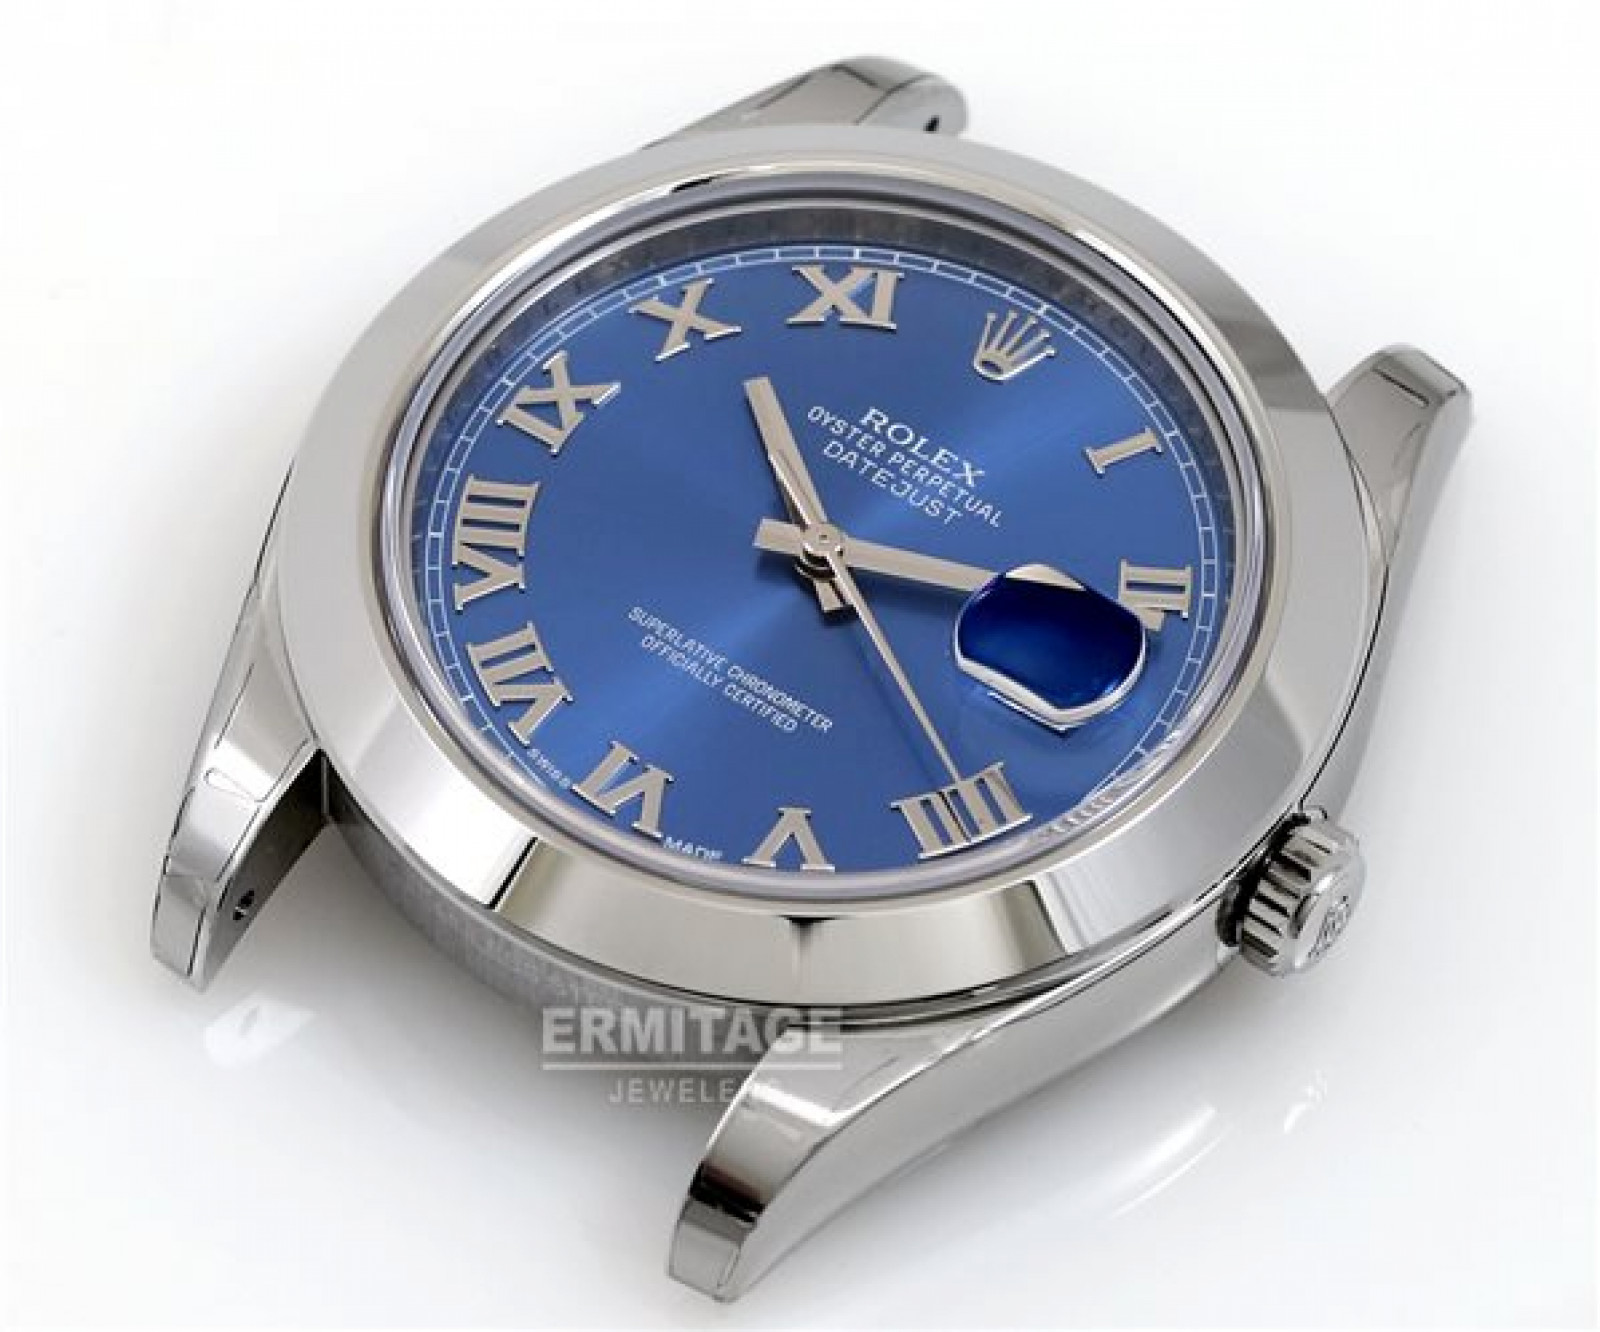 Rolex Datejust II 116300 Steel with Blue Dial & Roman Markers